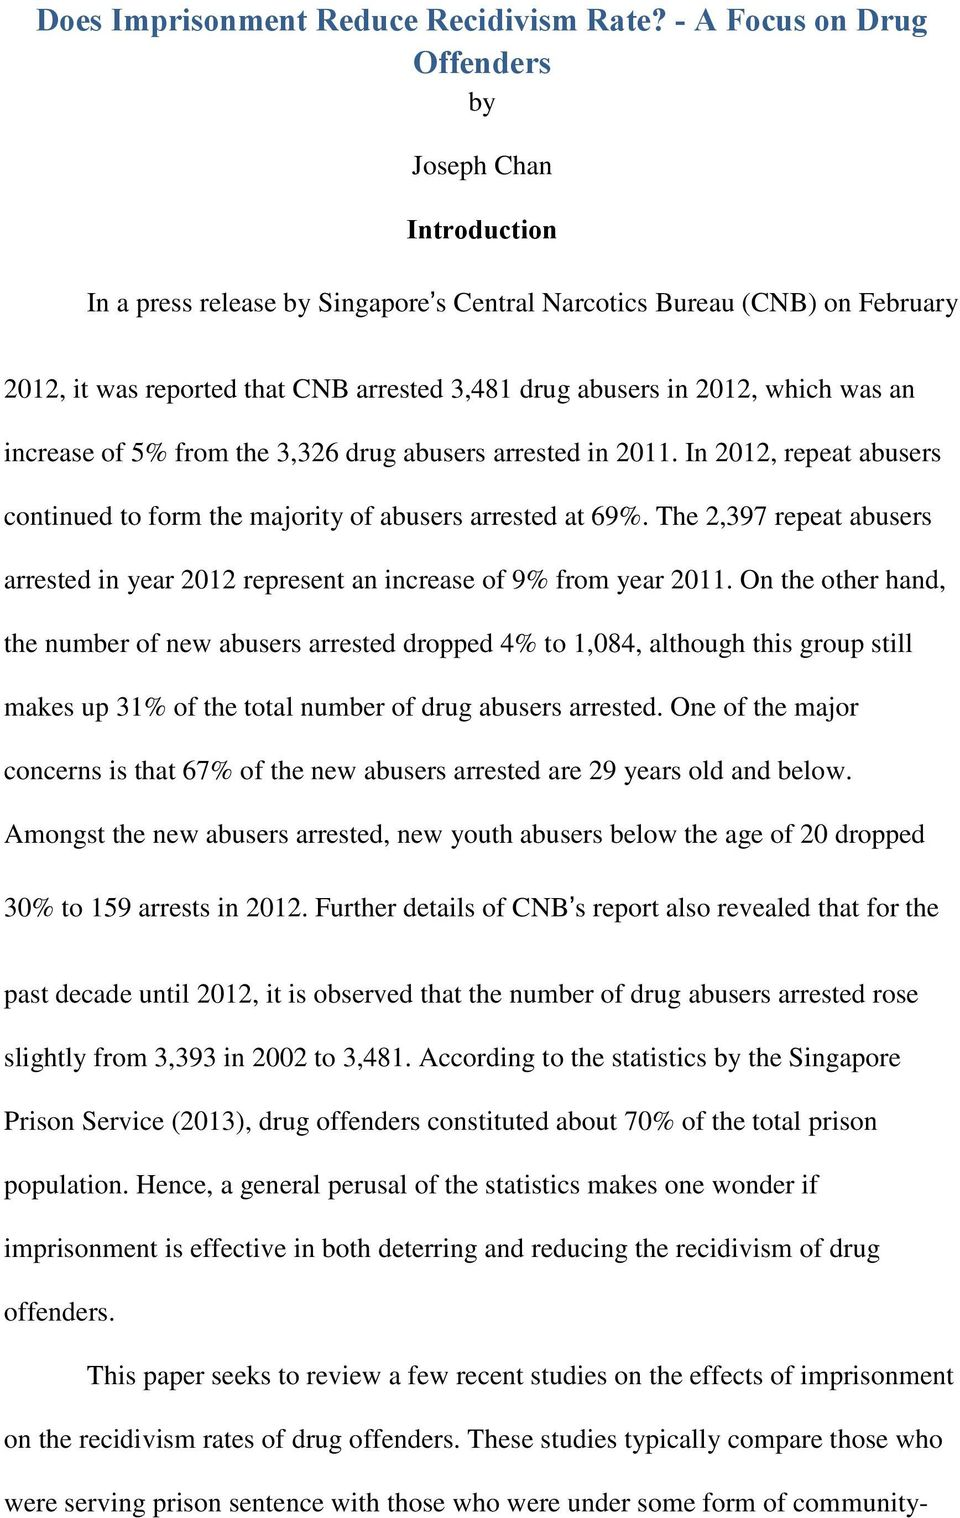 2012, which was an increase of 5% from the 3,326 drug abusers arrested in 2011. In 2012, repeat abusers continued to form the majority of abusers arrested at 69%.